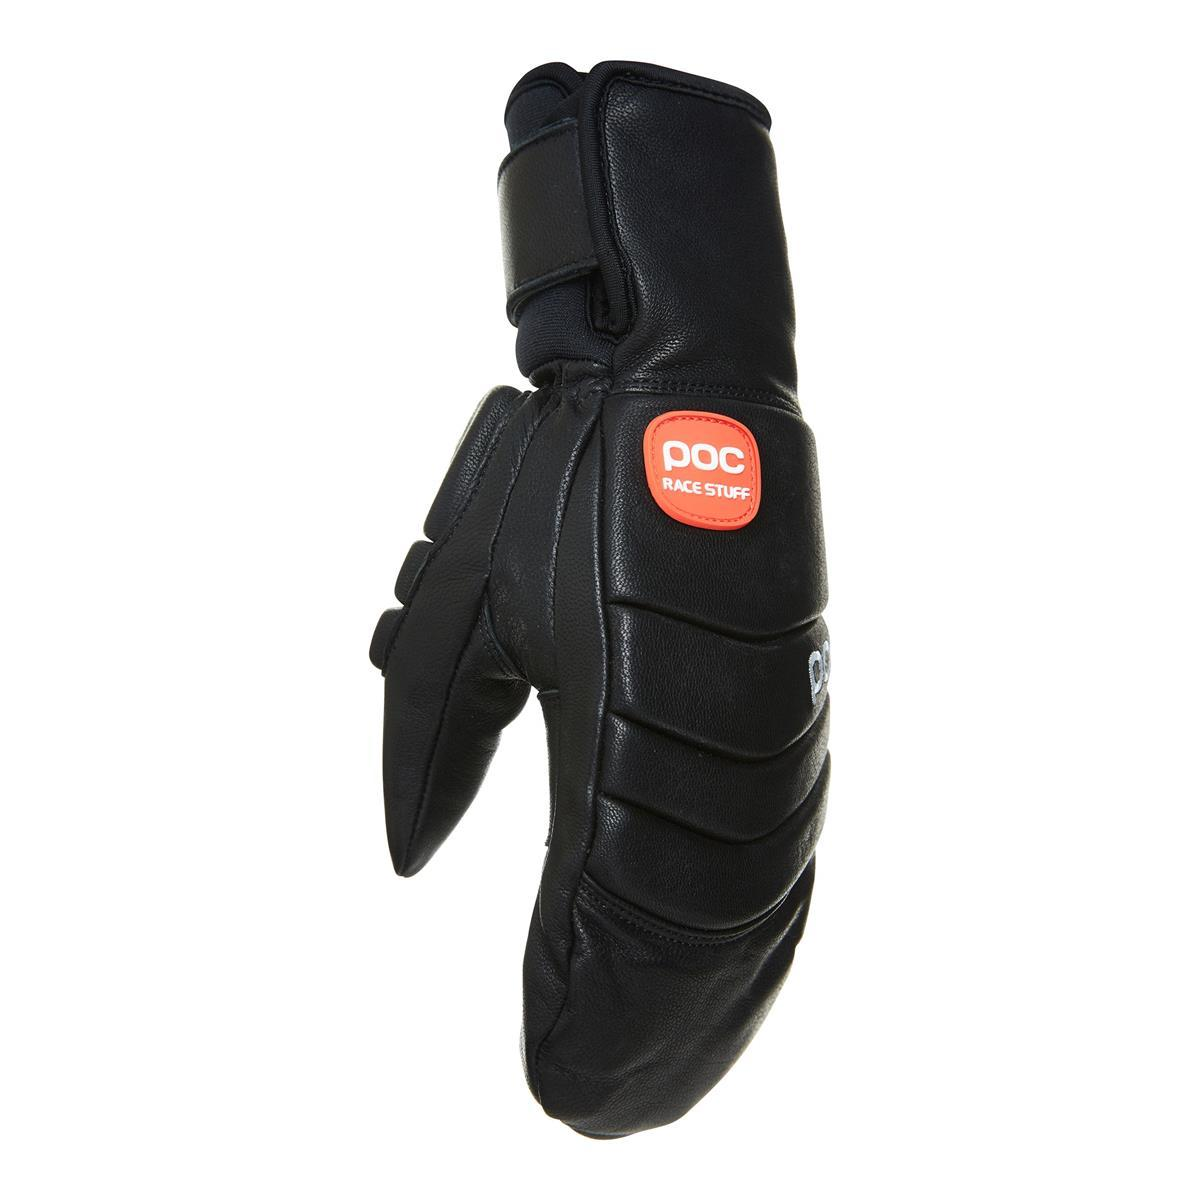 POC Palm Comp Mitten Junior